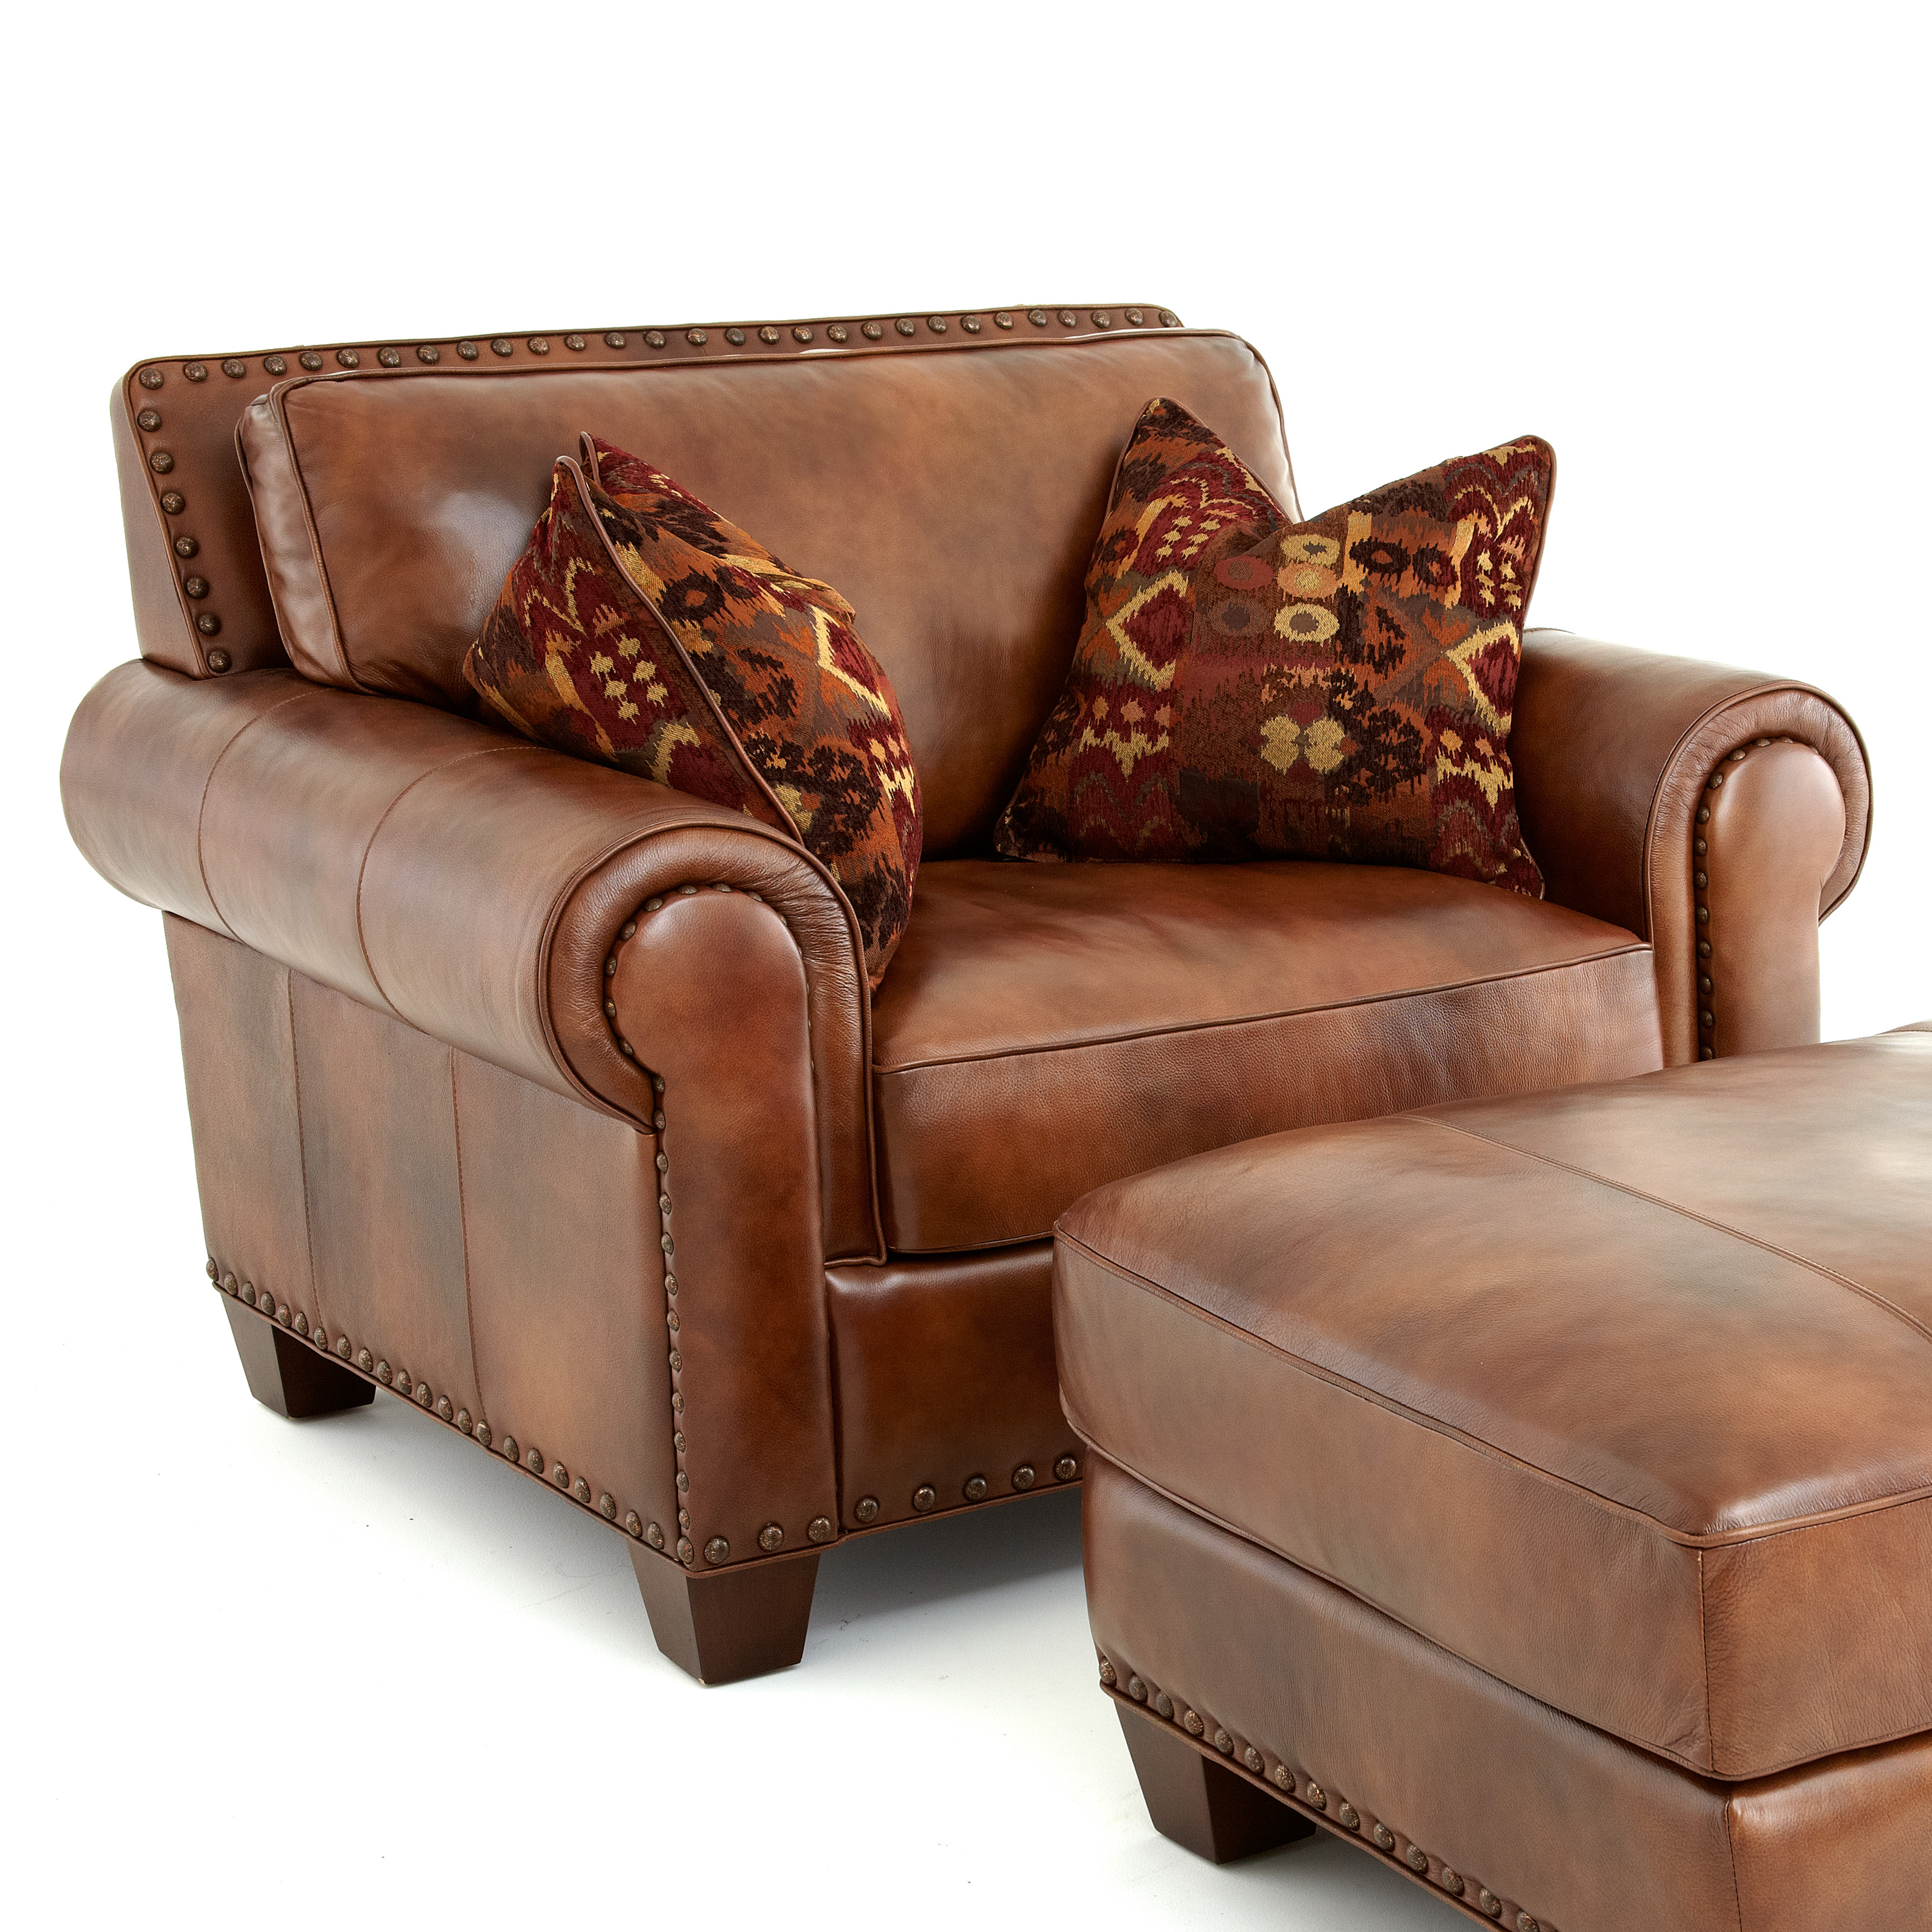 Leather Sofa For Accent Pillows: Steve Silver Silverado Leather Chair With 2 Accent Pillows